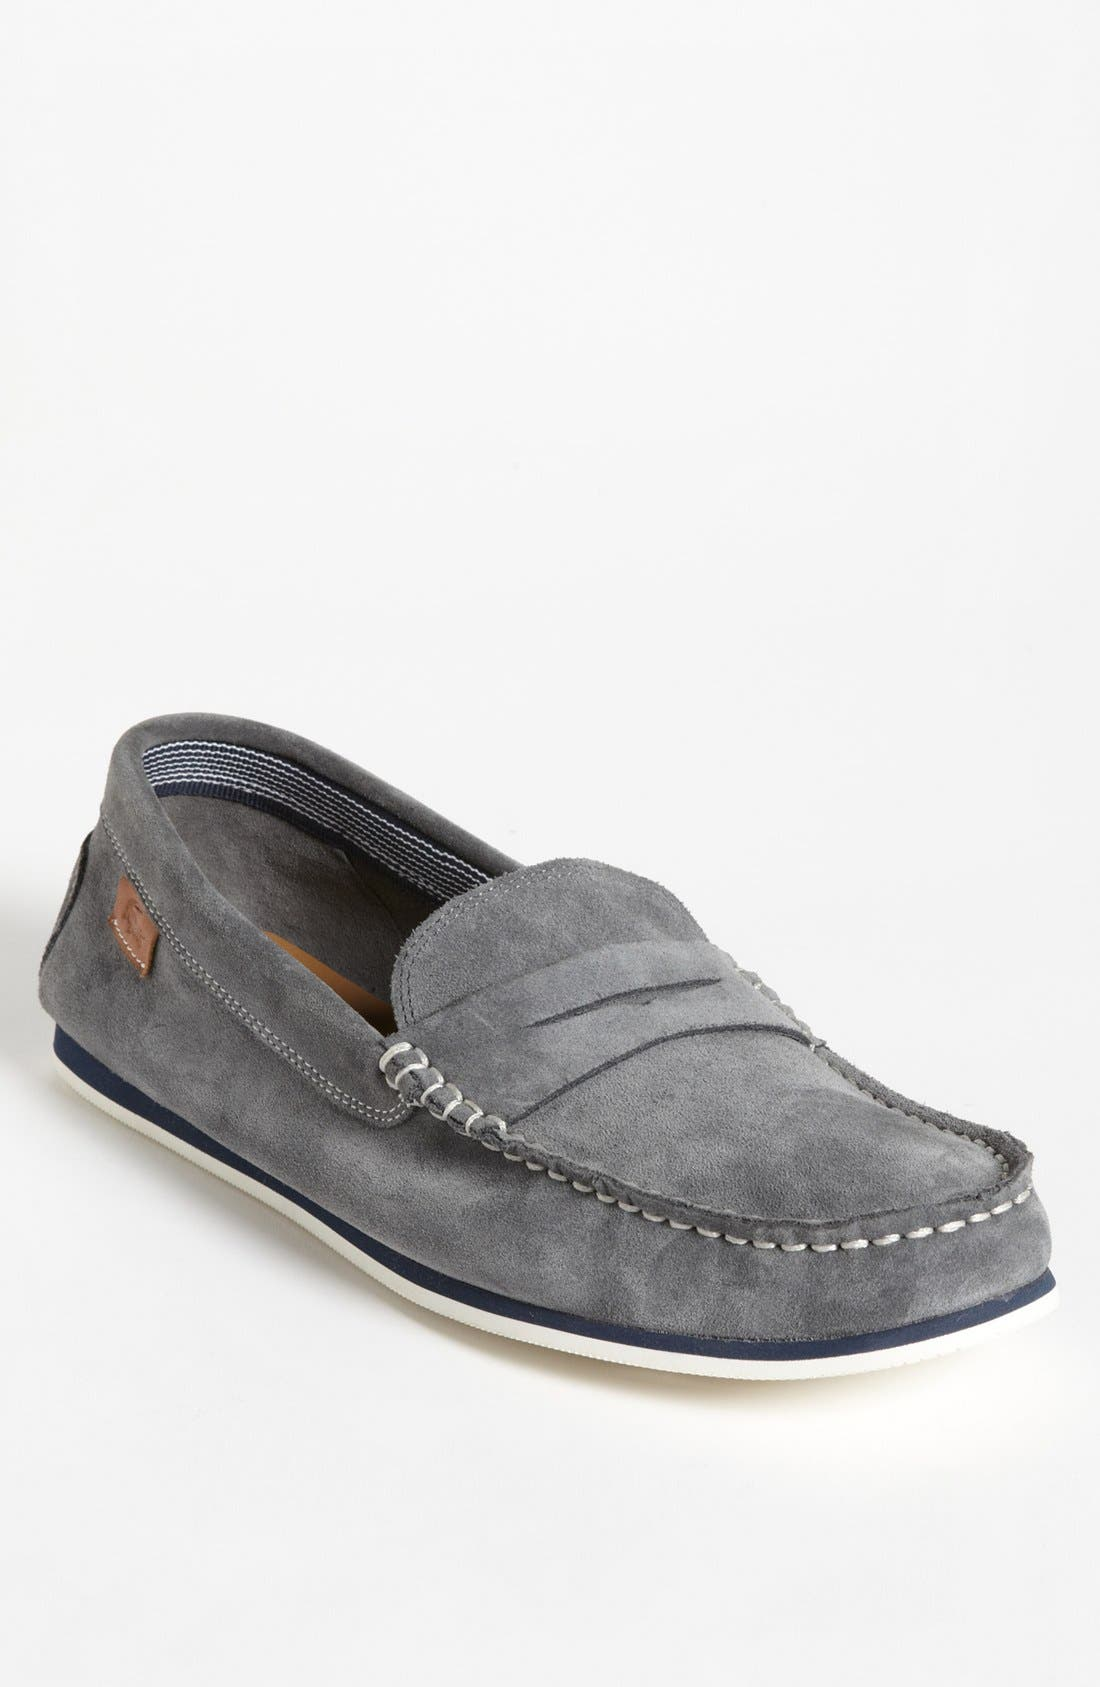 Main Image - Lacoste 'Chanler' Penny Loafer (Online Only)